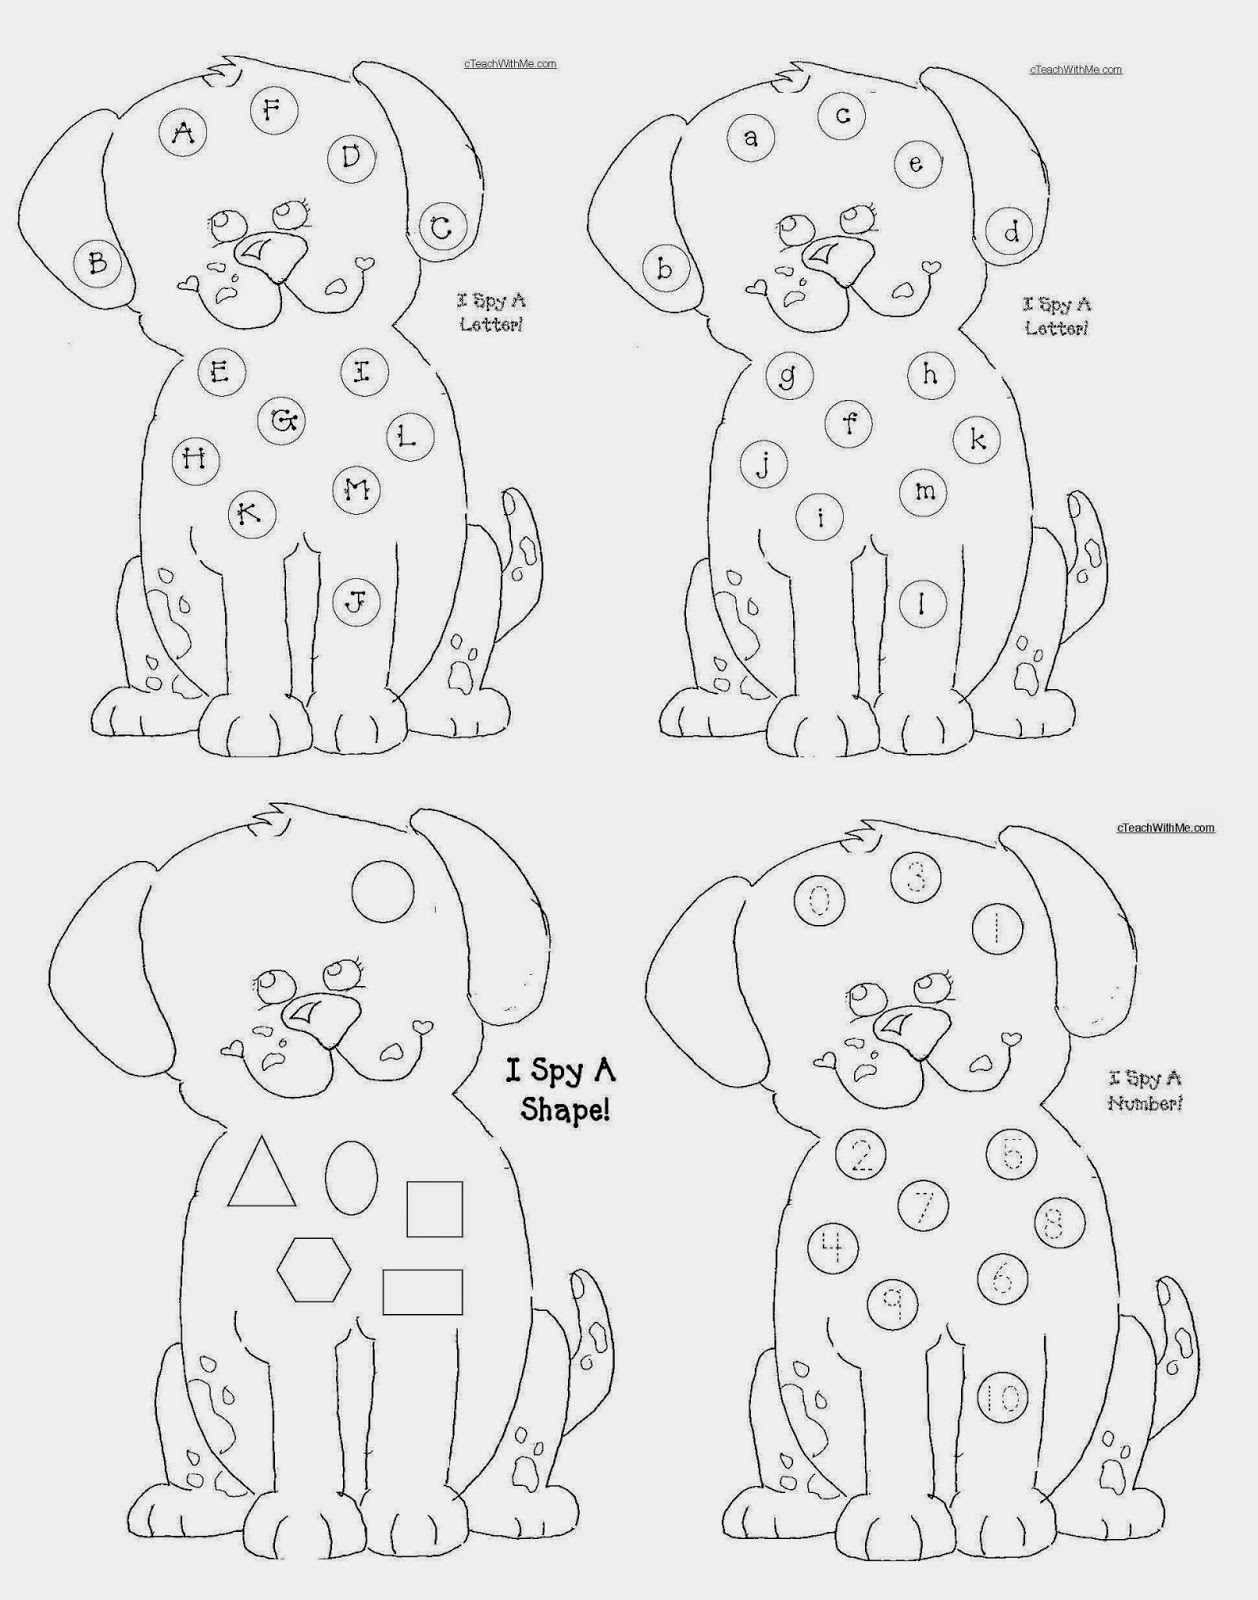 Classroom Freebies Common Core Fire Safety Puppy Packet – I Spy Worksheets